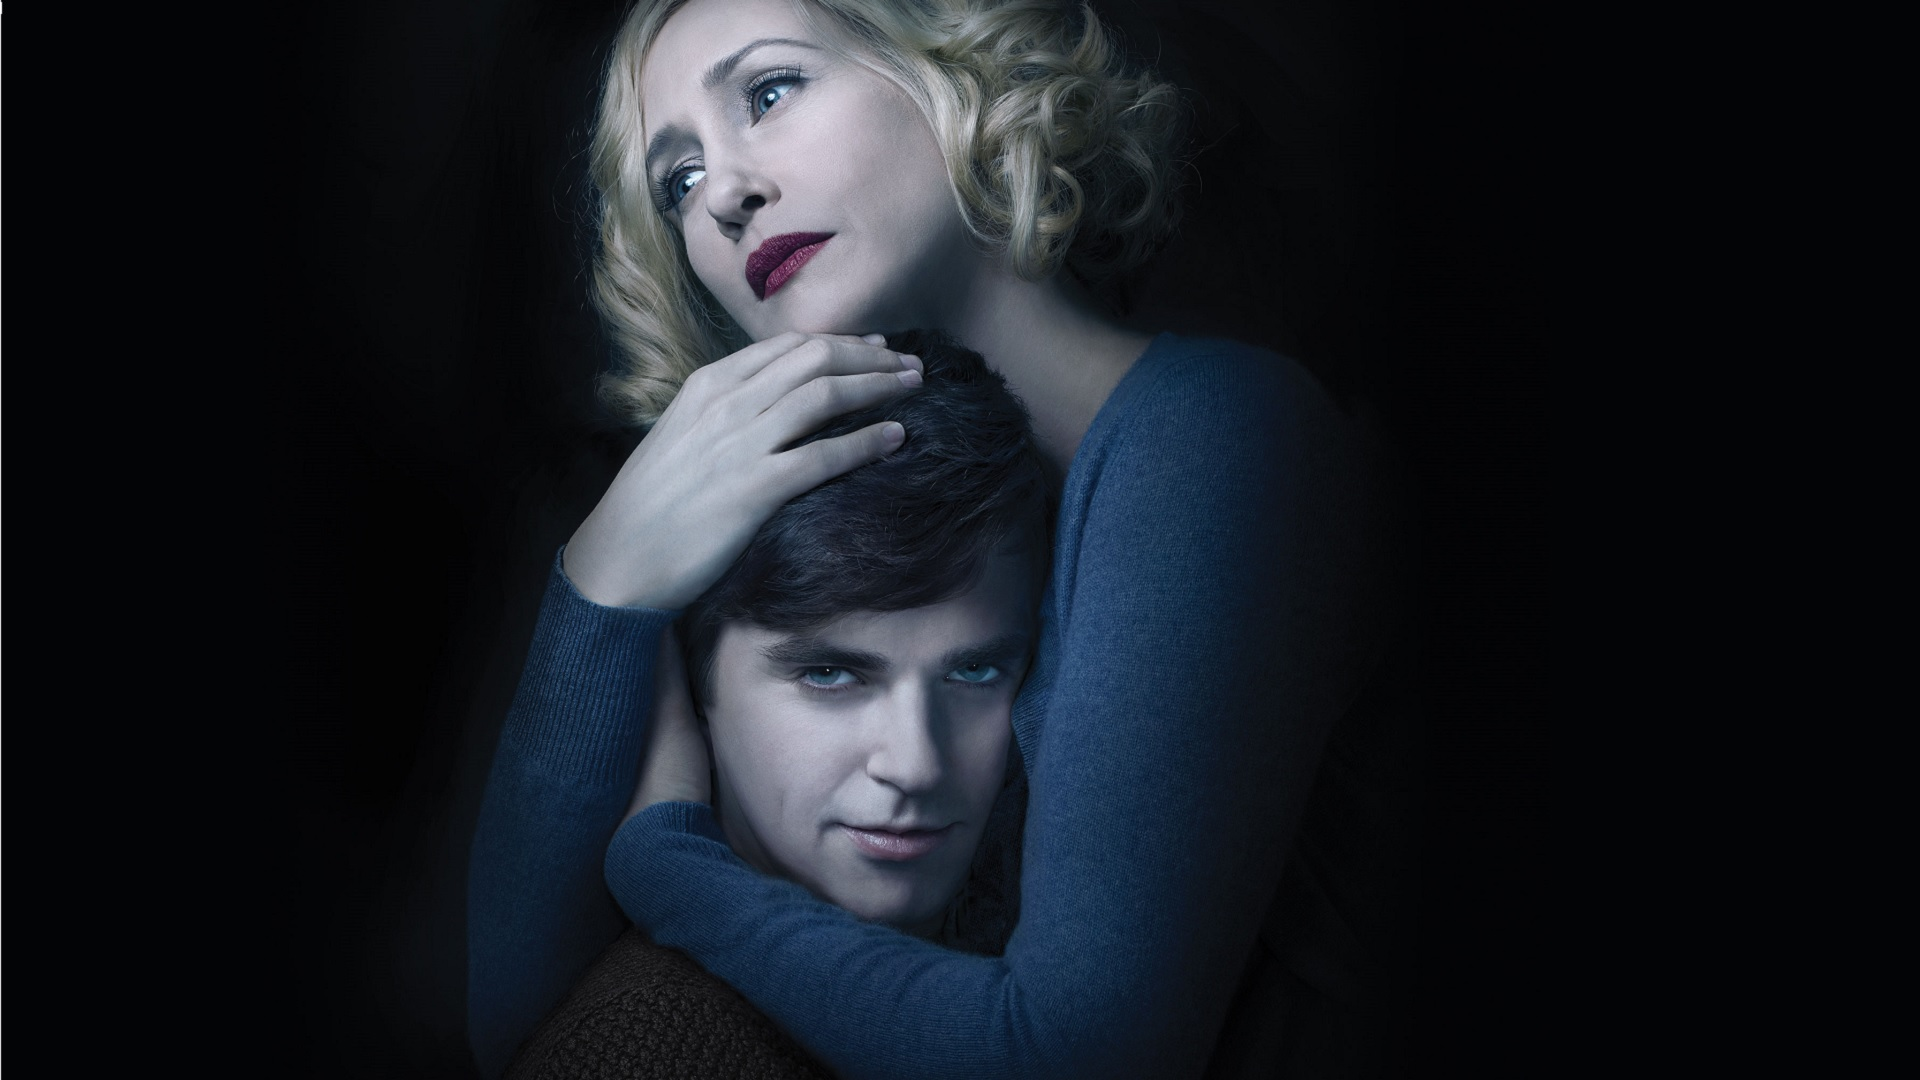 Bates Motel Wallpapers, Pictures, Images